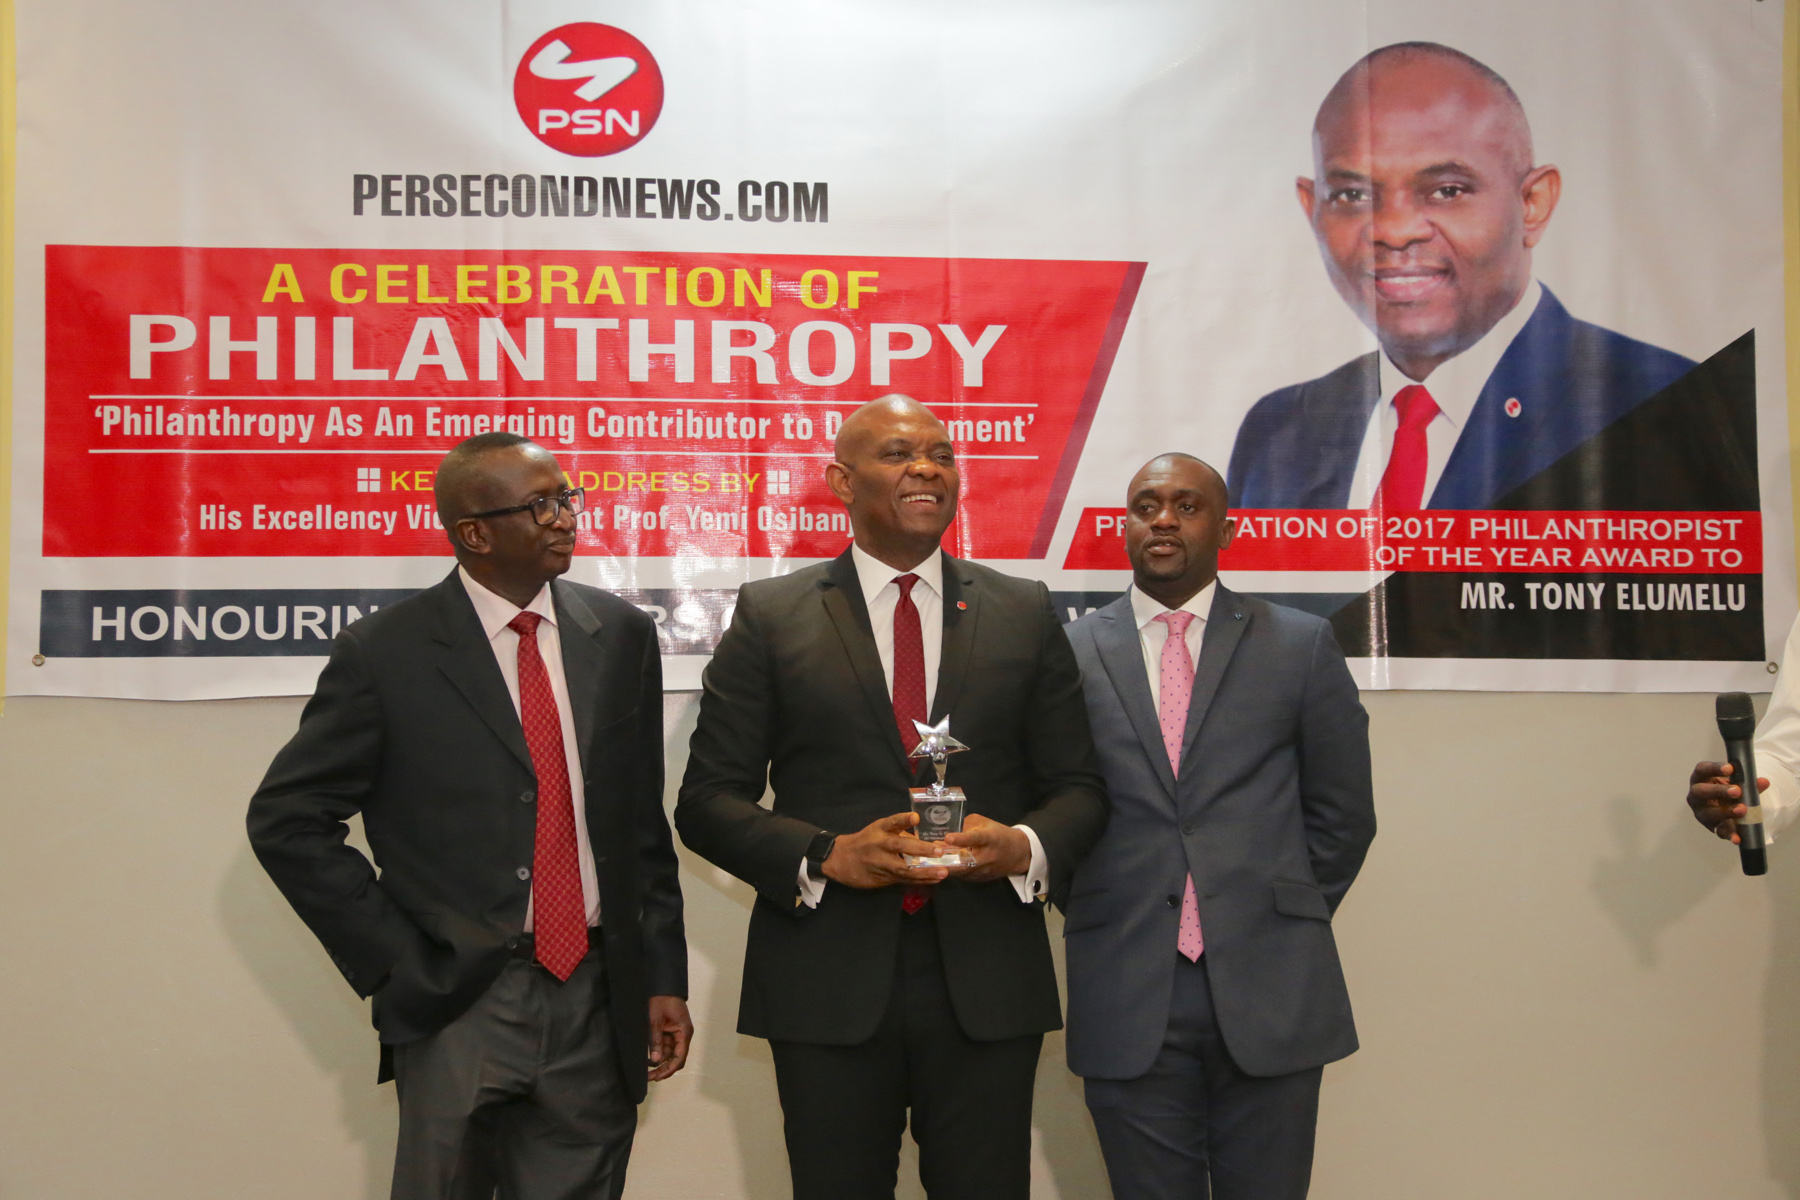 Elumelu Receives 2017 Philanthropist of the Year Award